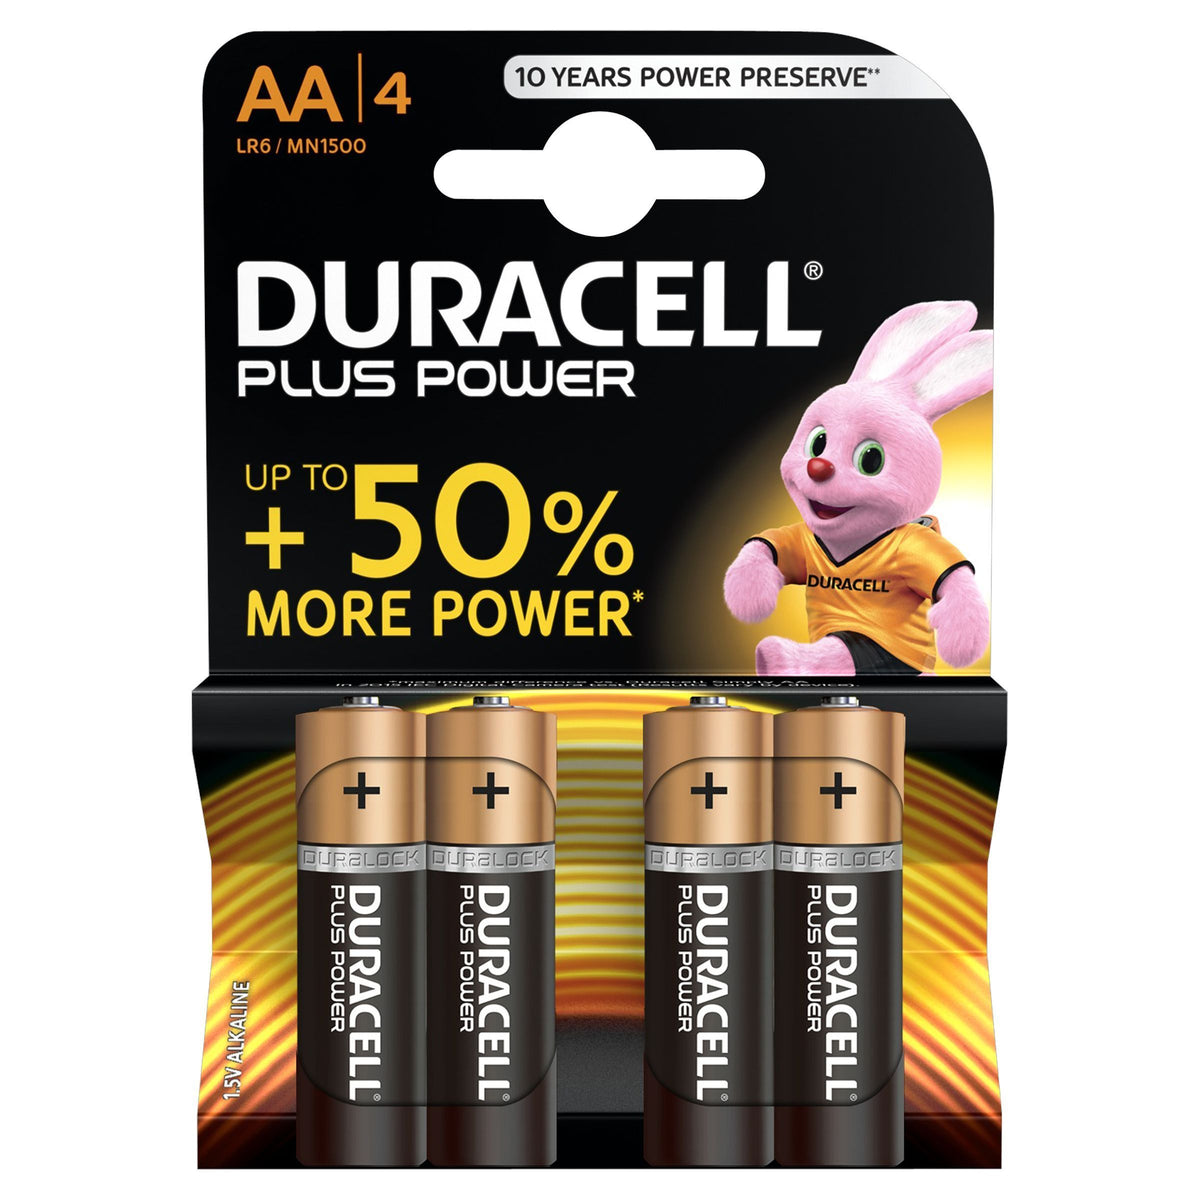 Duracell Plus Power Type AA Alkaline Batteries - Pack of 4